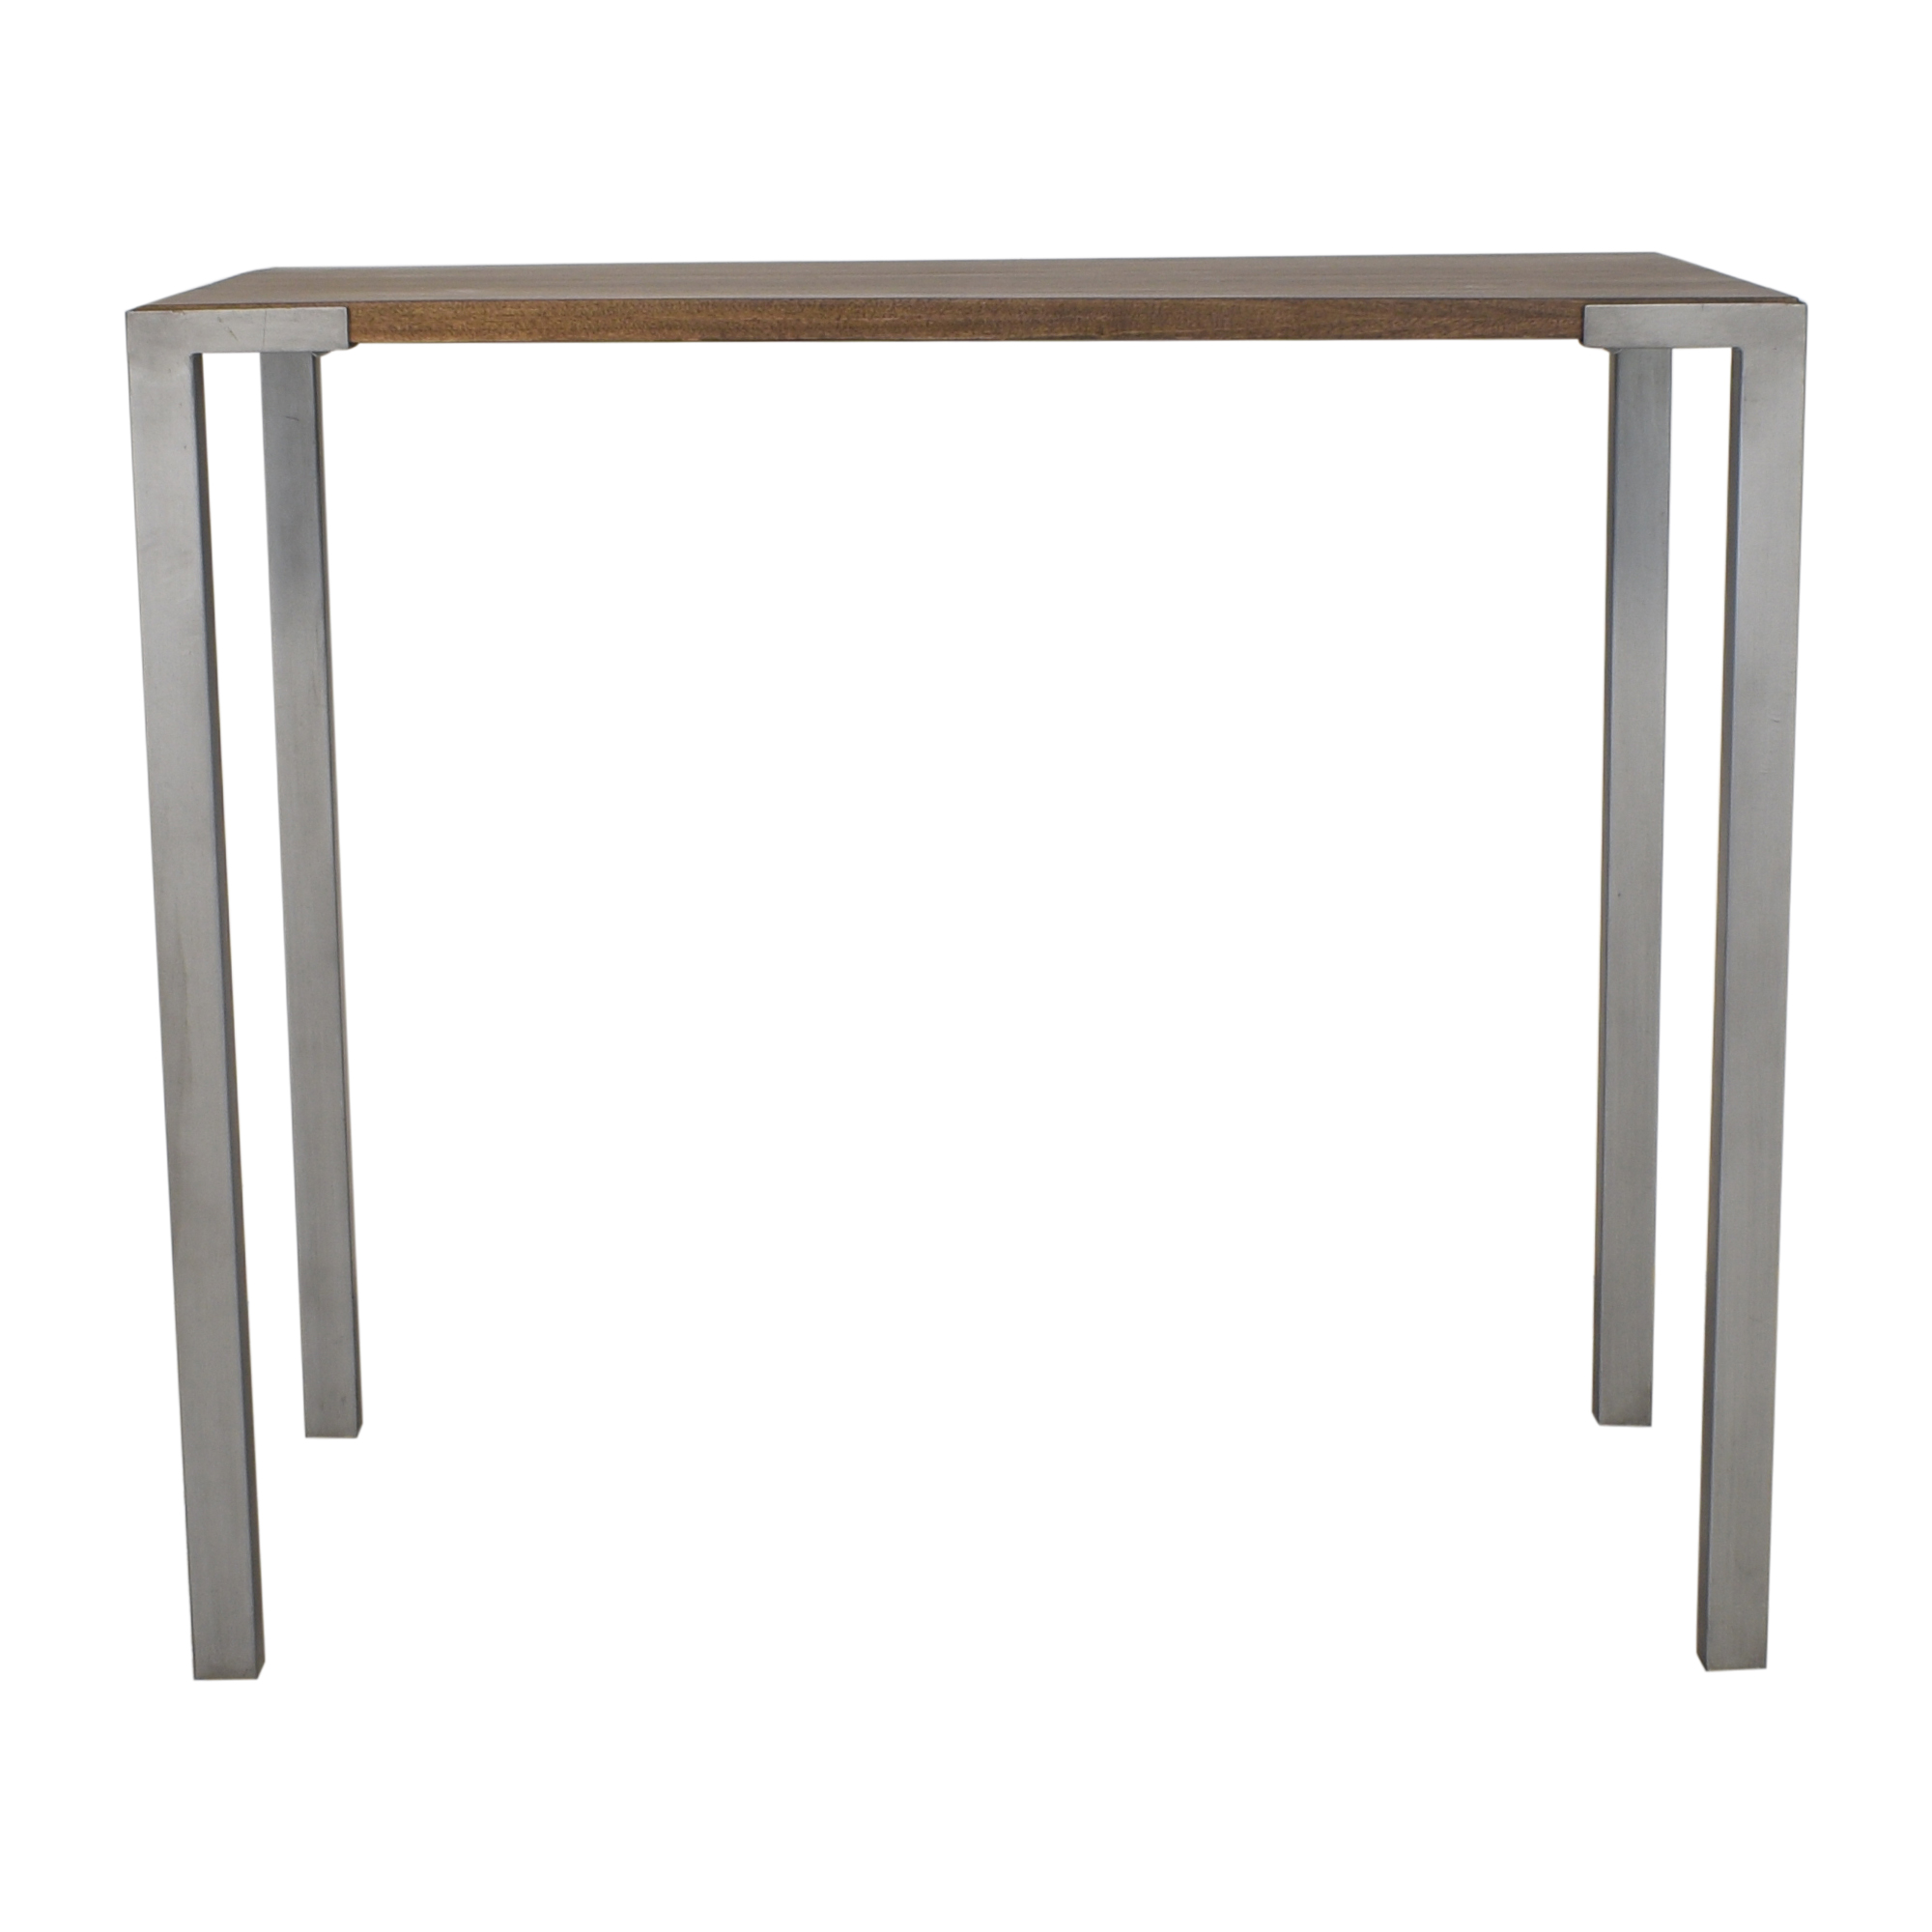 shop CB2 CB2 Stilt High Dining Table online